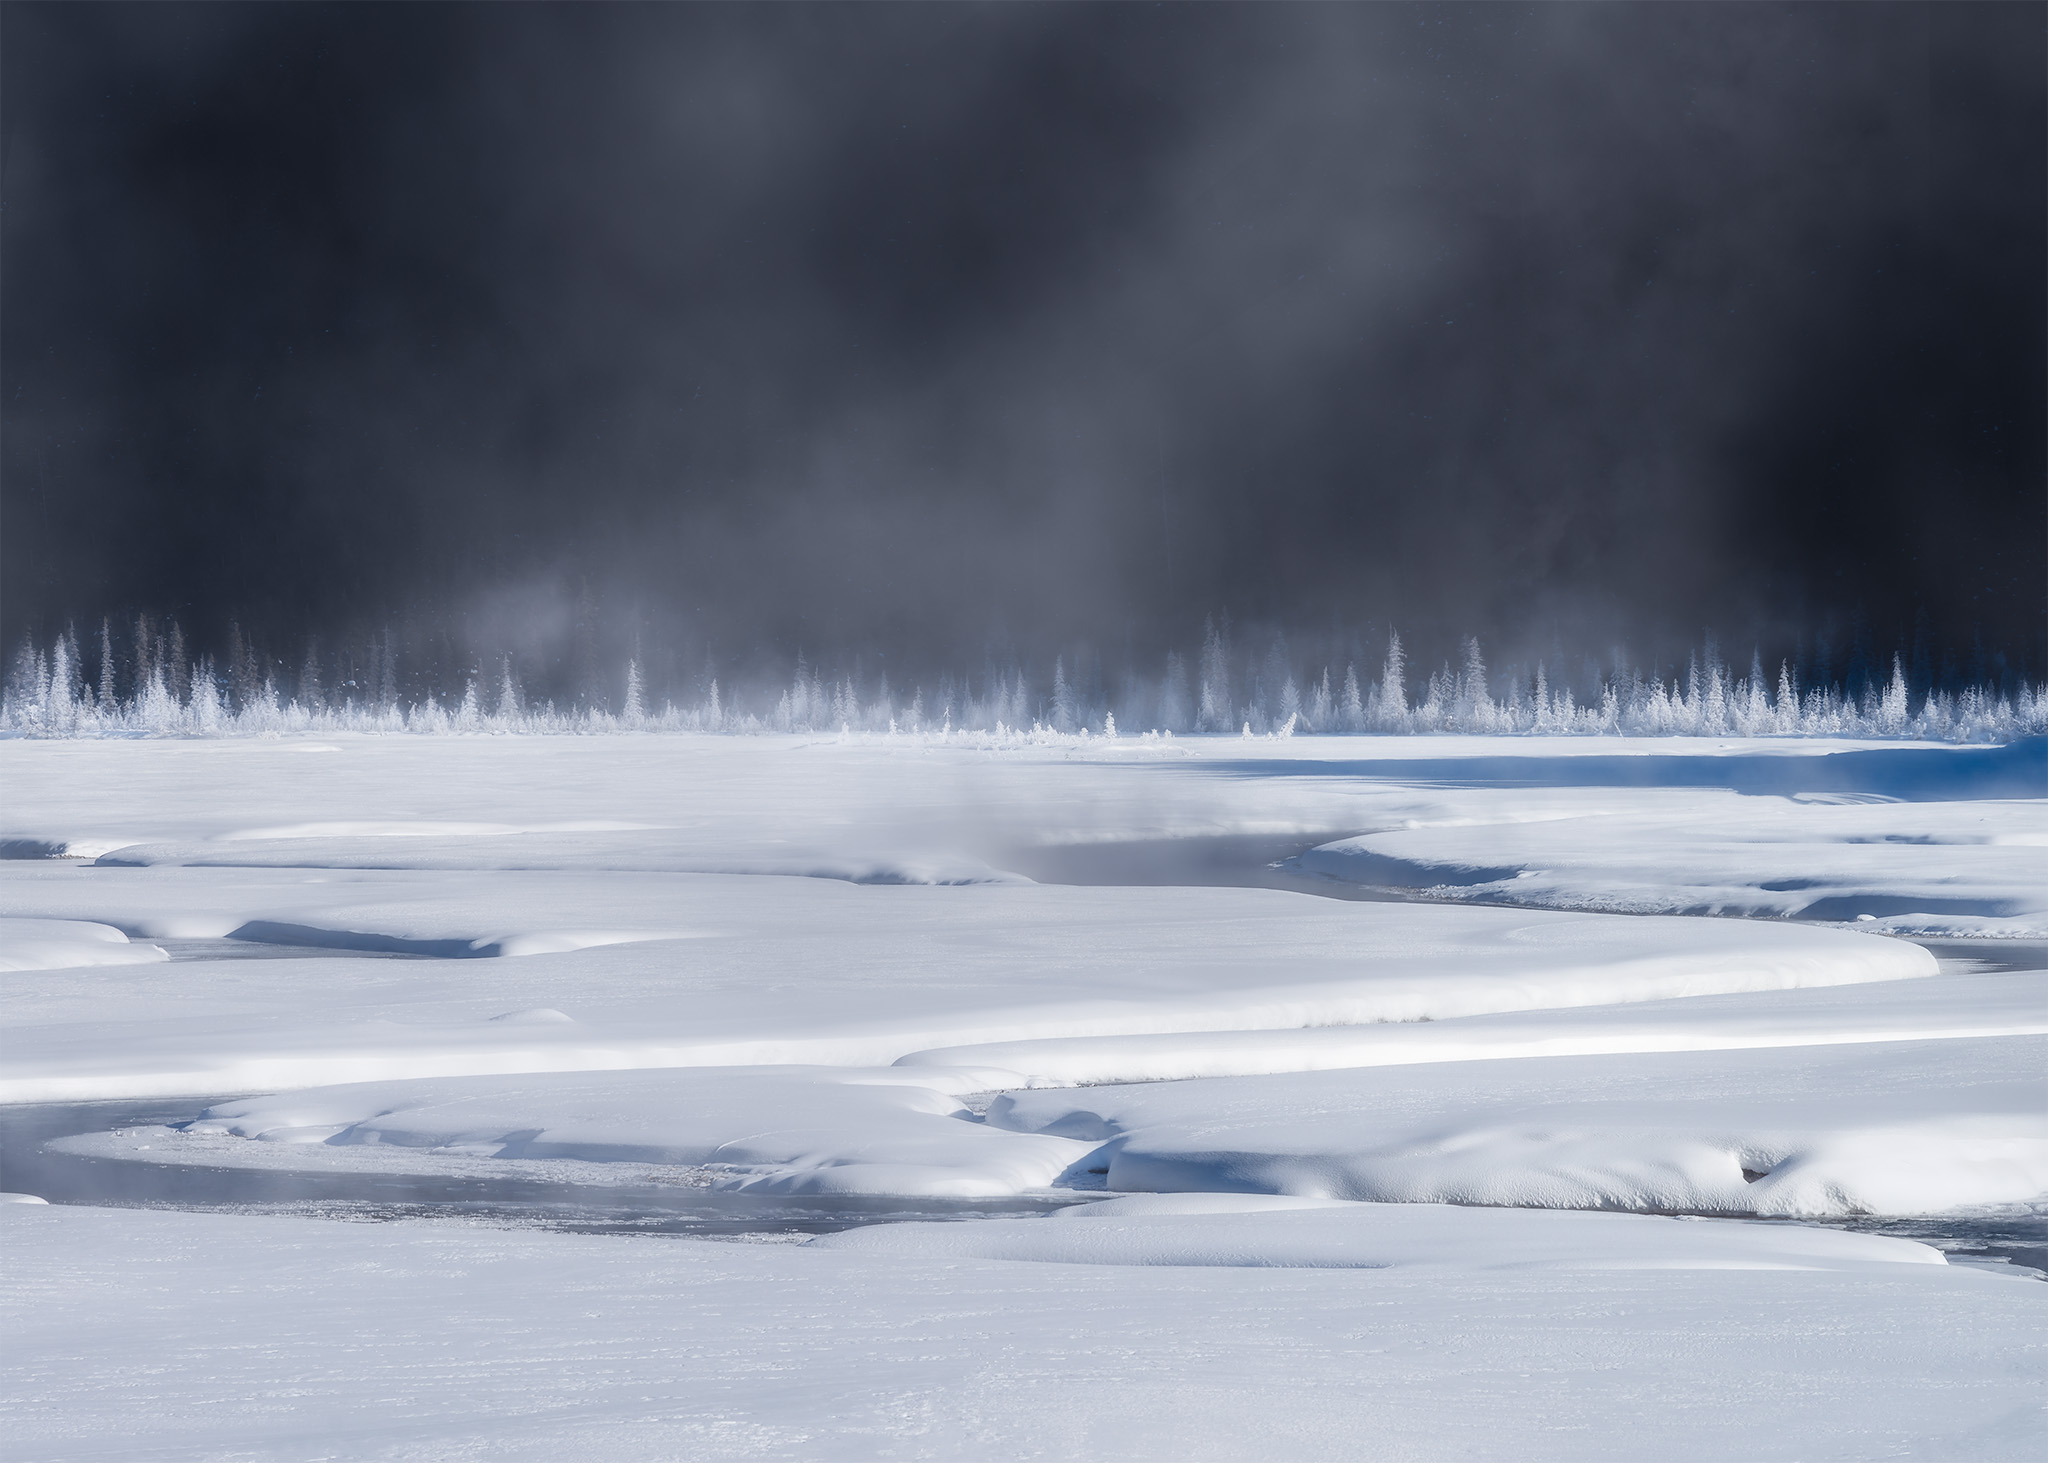 An intimate landscape photograph of the Candian Rockies on a cold winter morning that created steam on the river